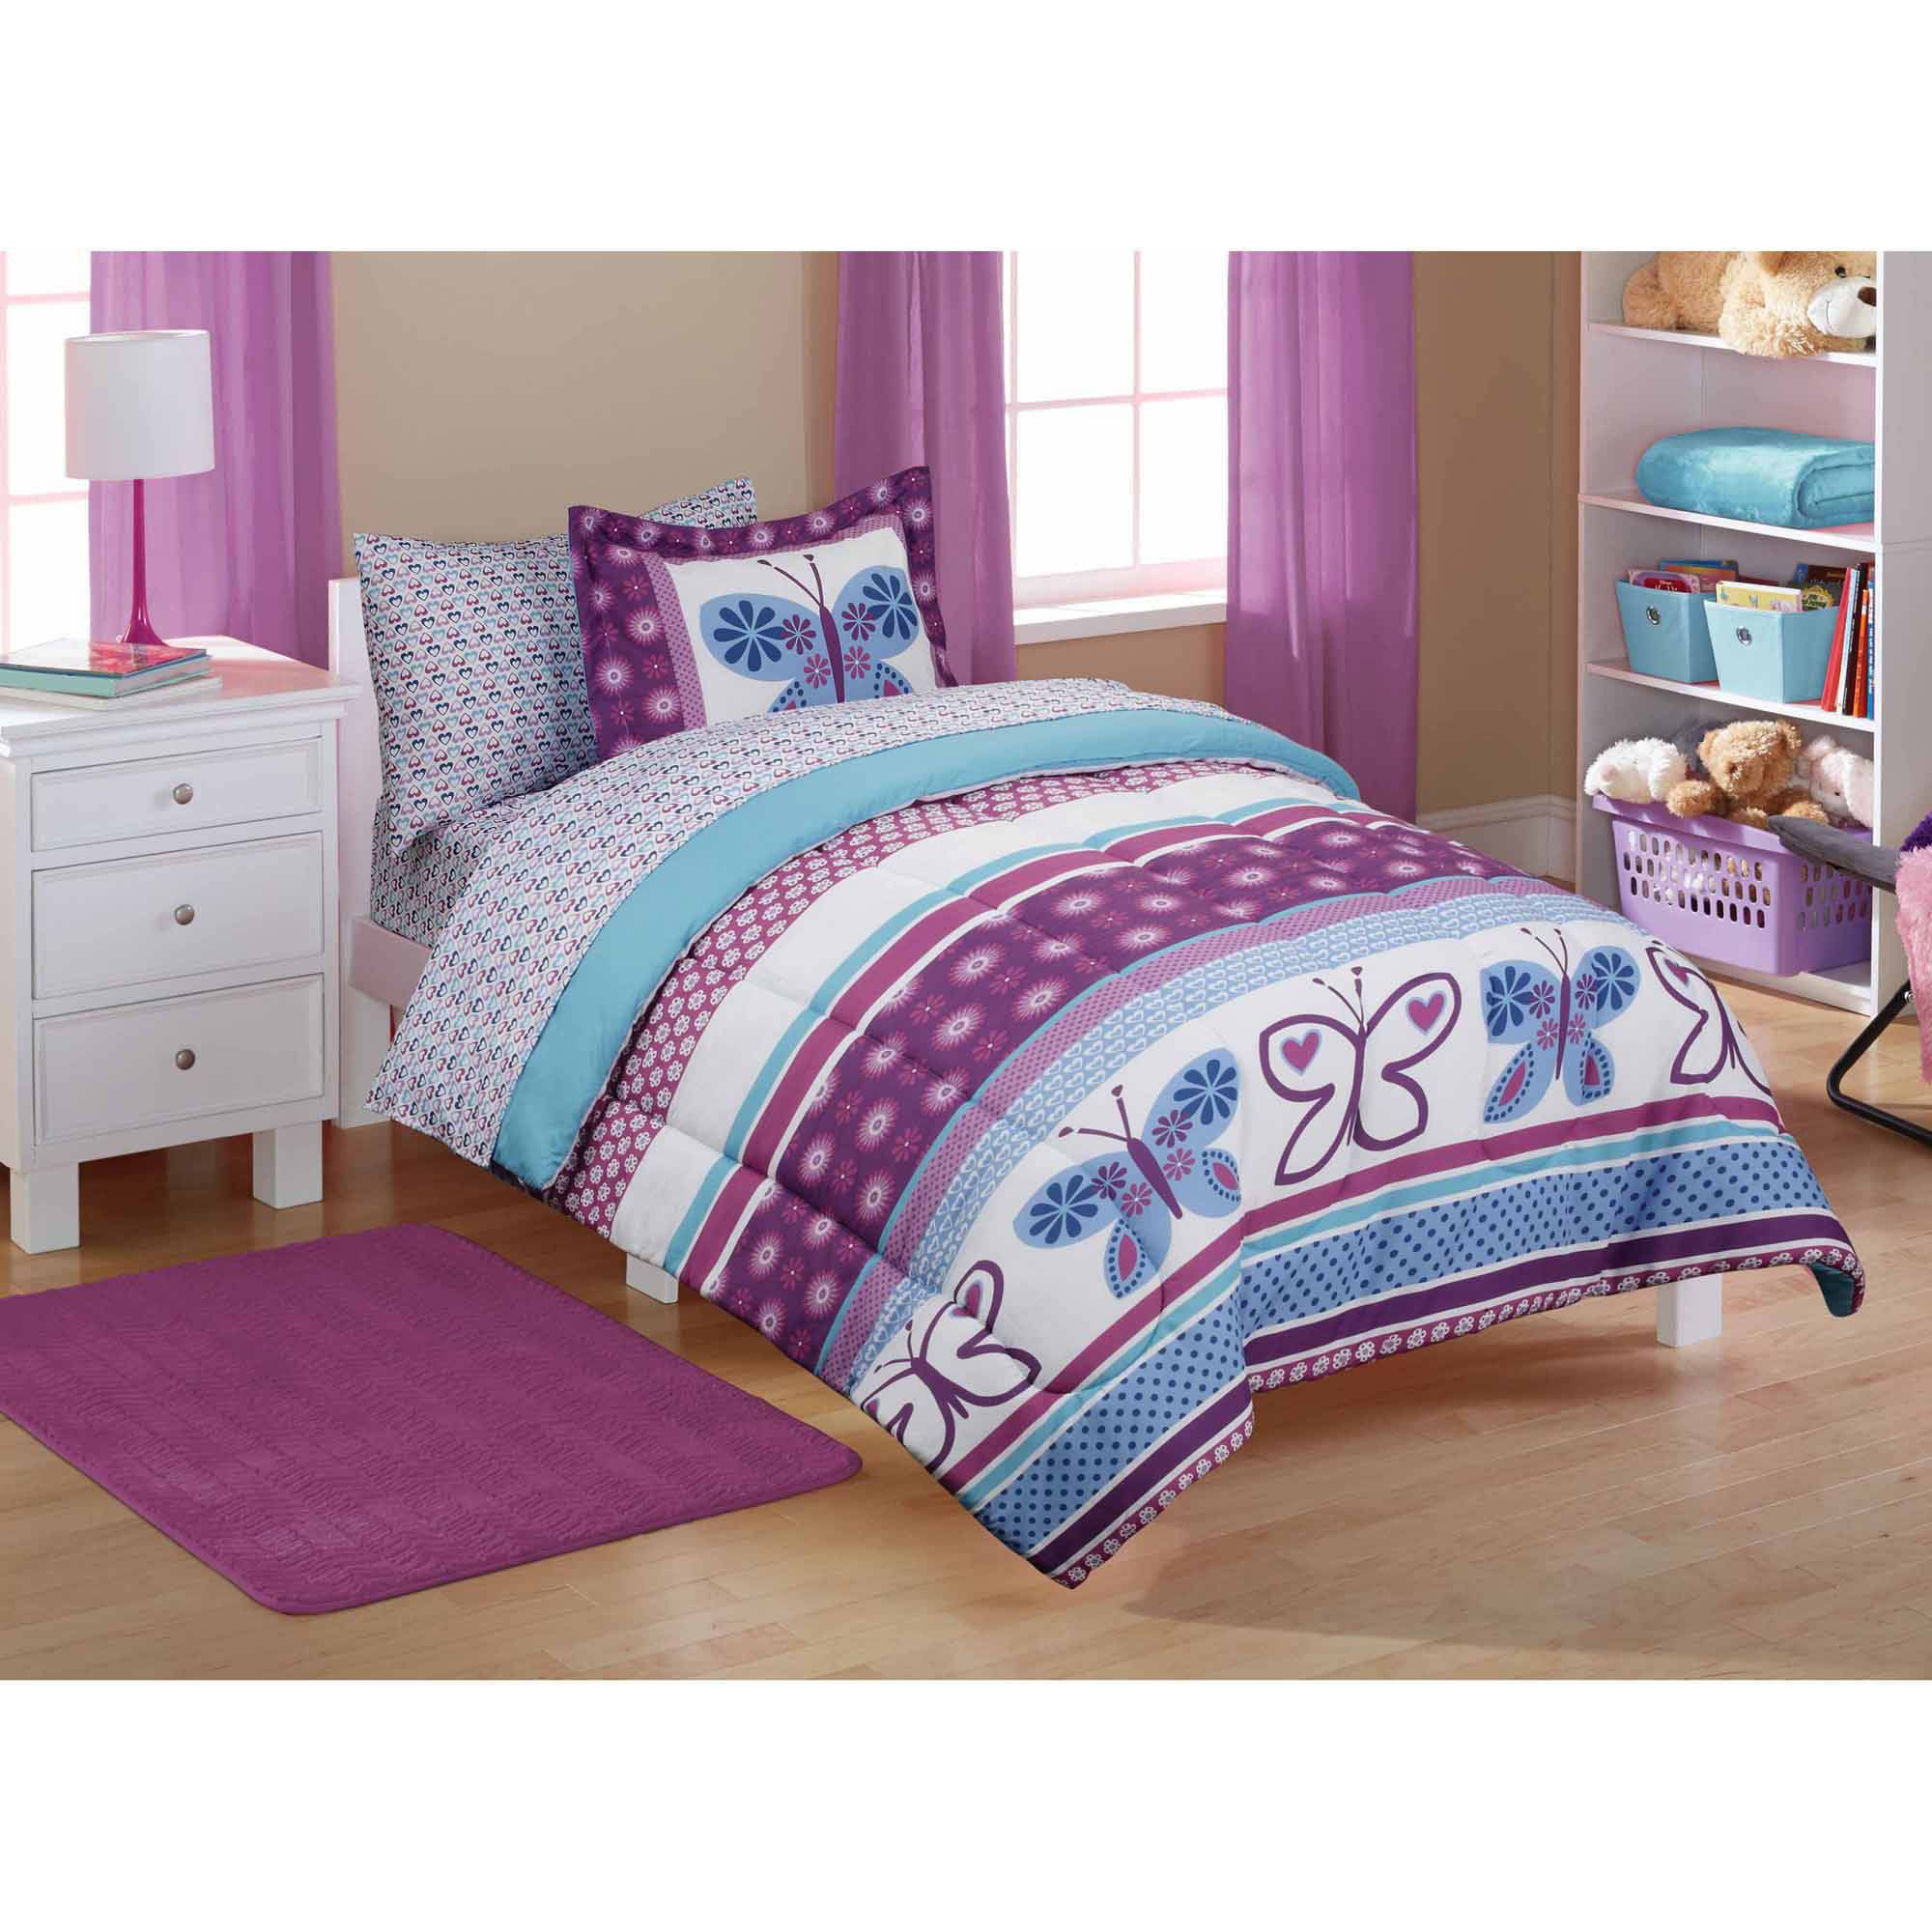 Mainstays Kids Purple Butterfly Coordinated Bed-in-a-Bag ...